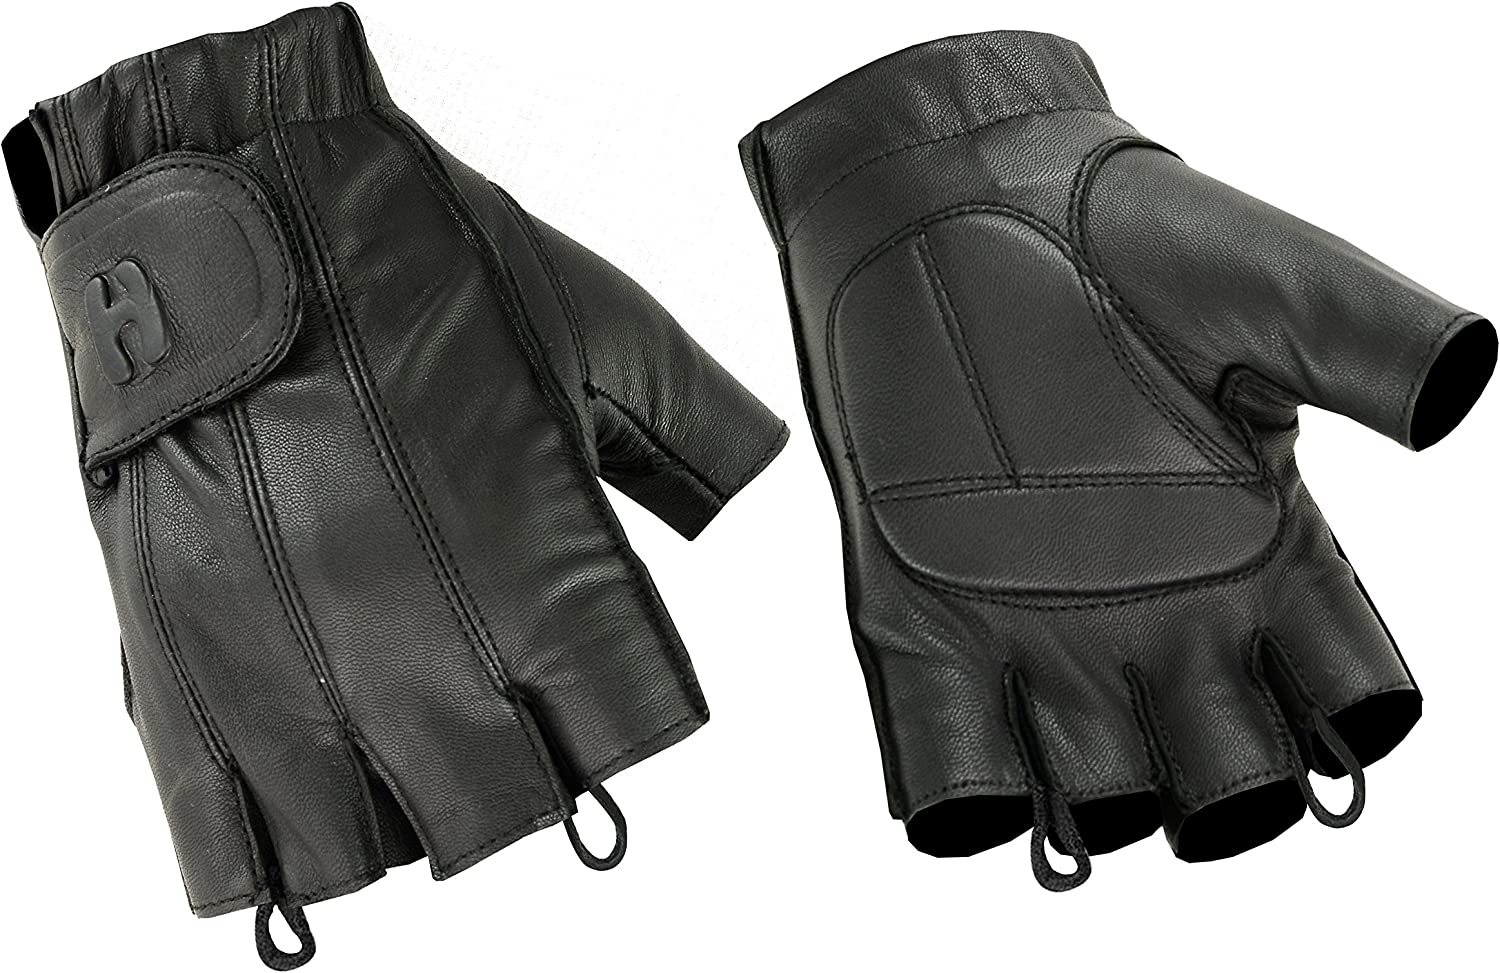 Driving Police Outdoor Motorcycle Riding Hugger Fingerless Black Leather Gloves w//Gel Padded Palms